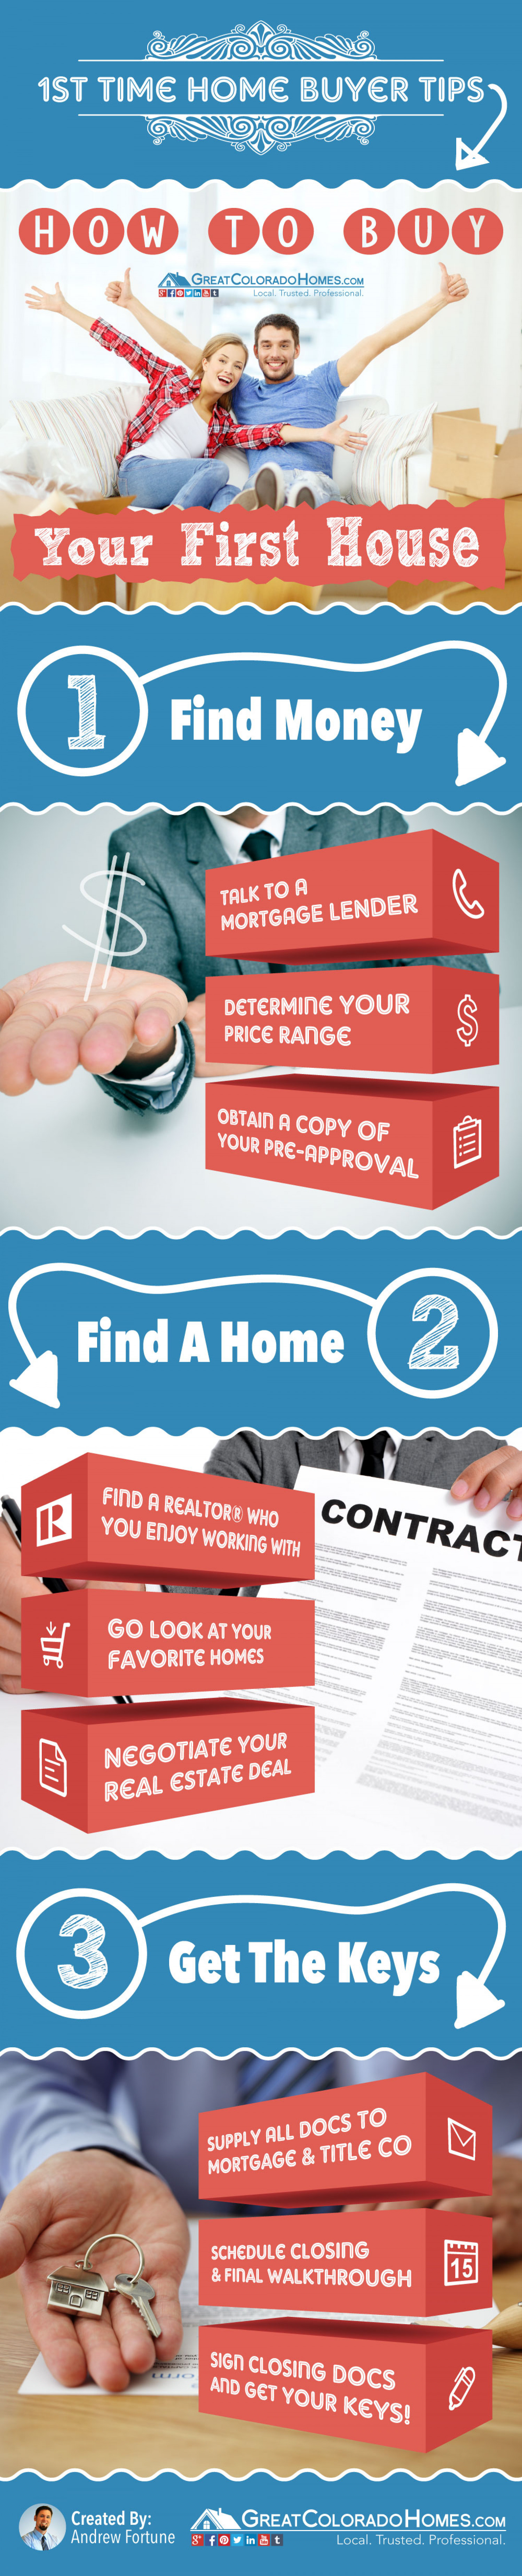 First Time Home Buyer Tips: How To Buy Your First House Infographic